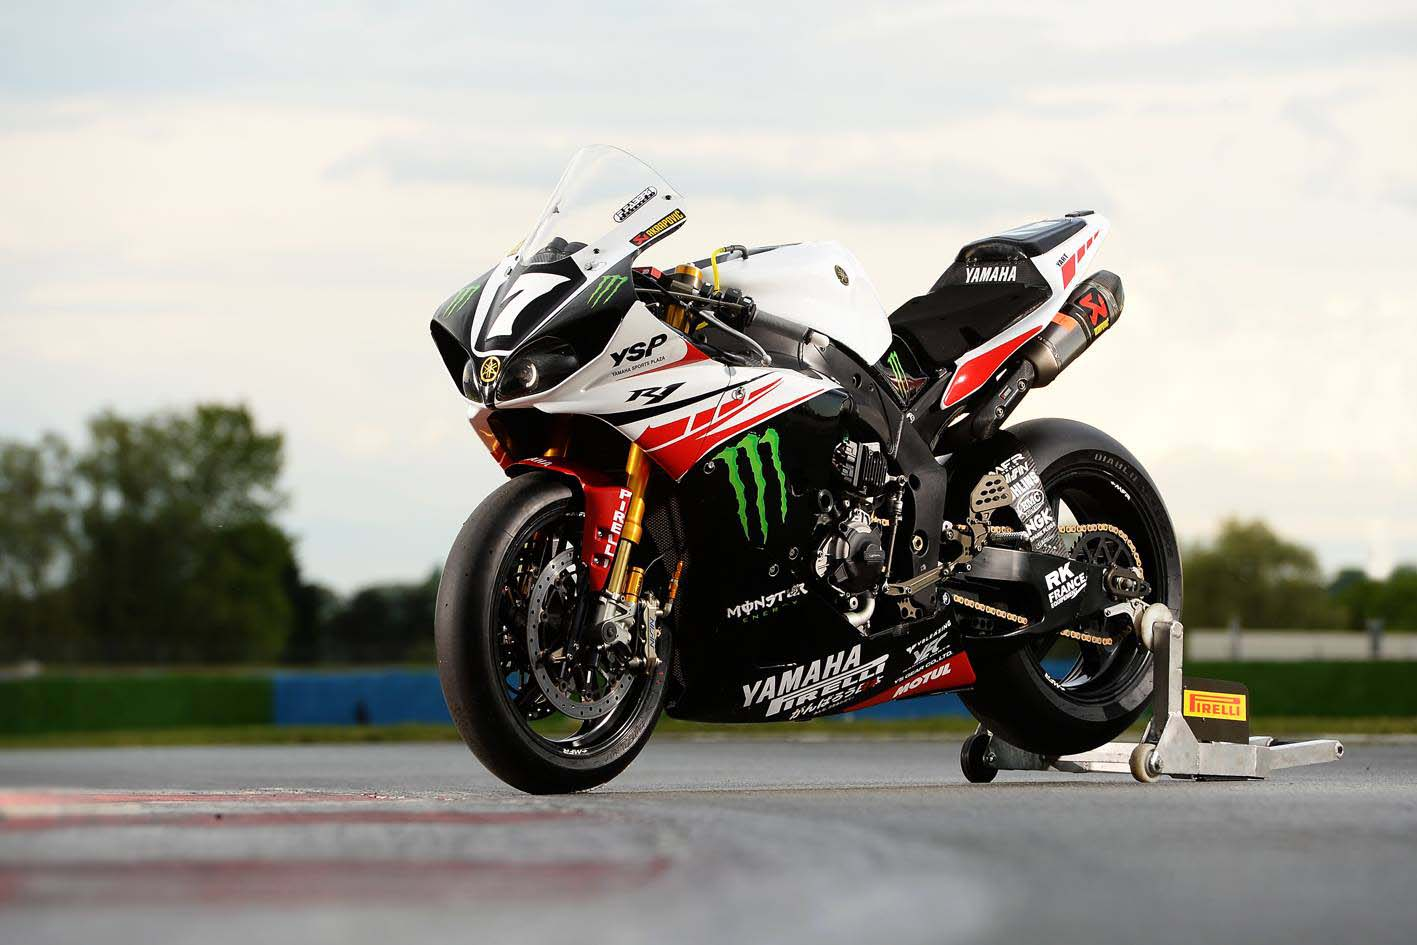 2014 yamaha yzf r1 endurance race bike by yart asphalt for Yamaha r1 2014